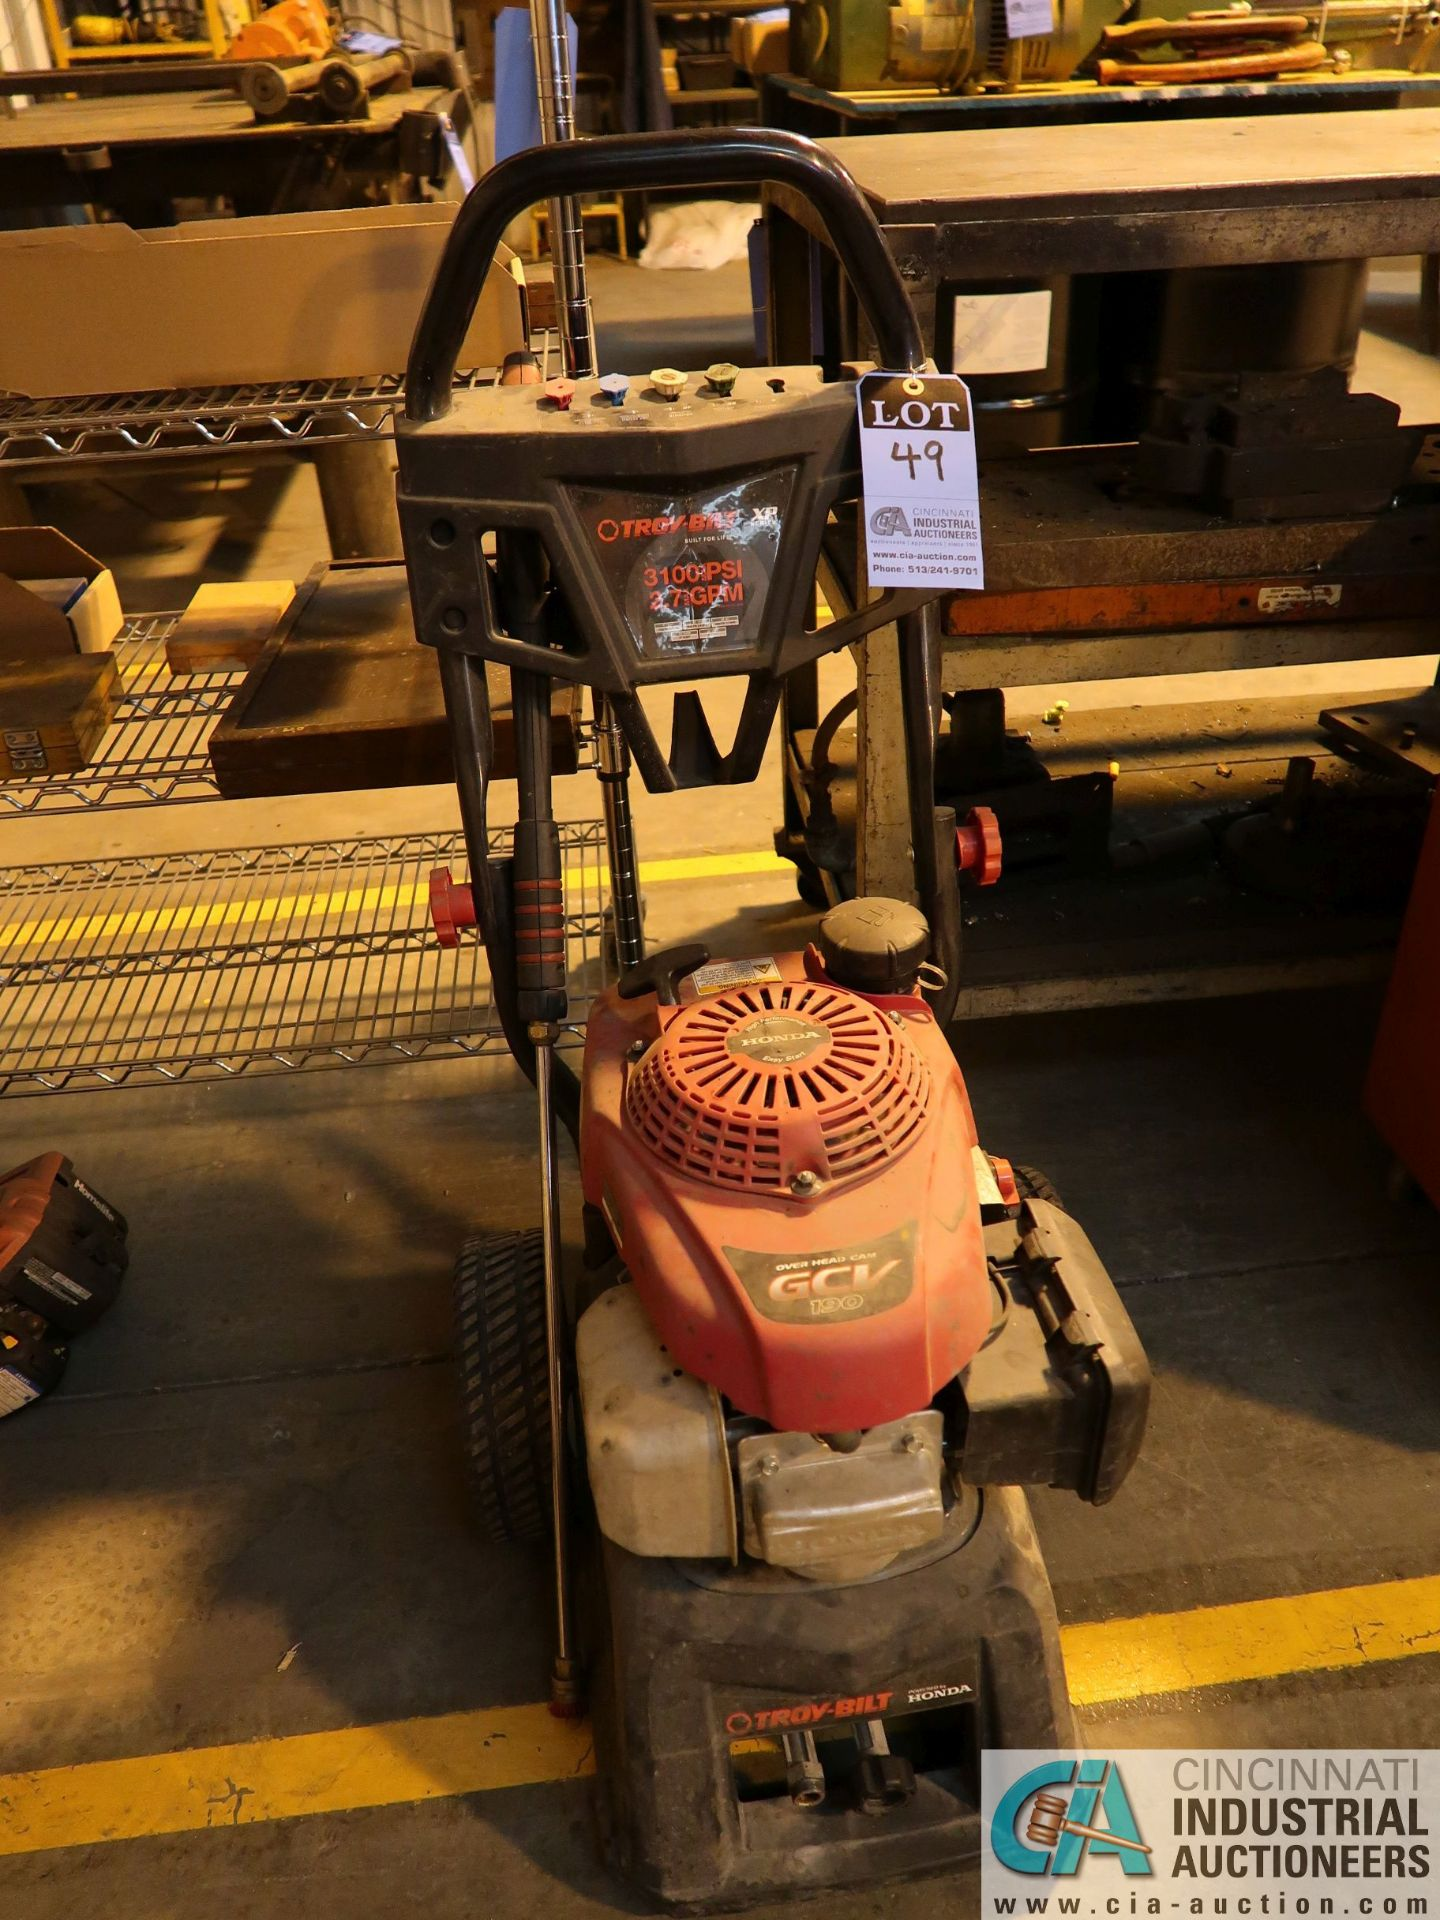 Lot 49 - TROY-BILT XP SERIES 3100 PSI GAS POWERED PRESSURE WASHER WITH WAND **NEEDS WATER HOSE**